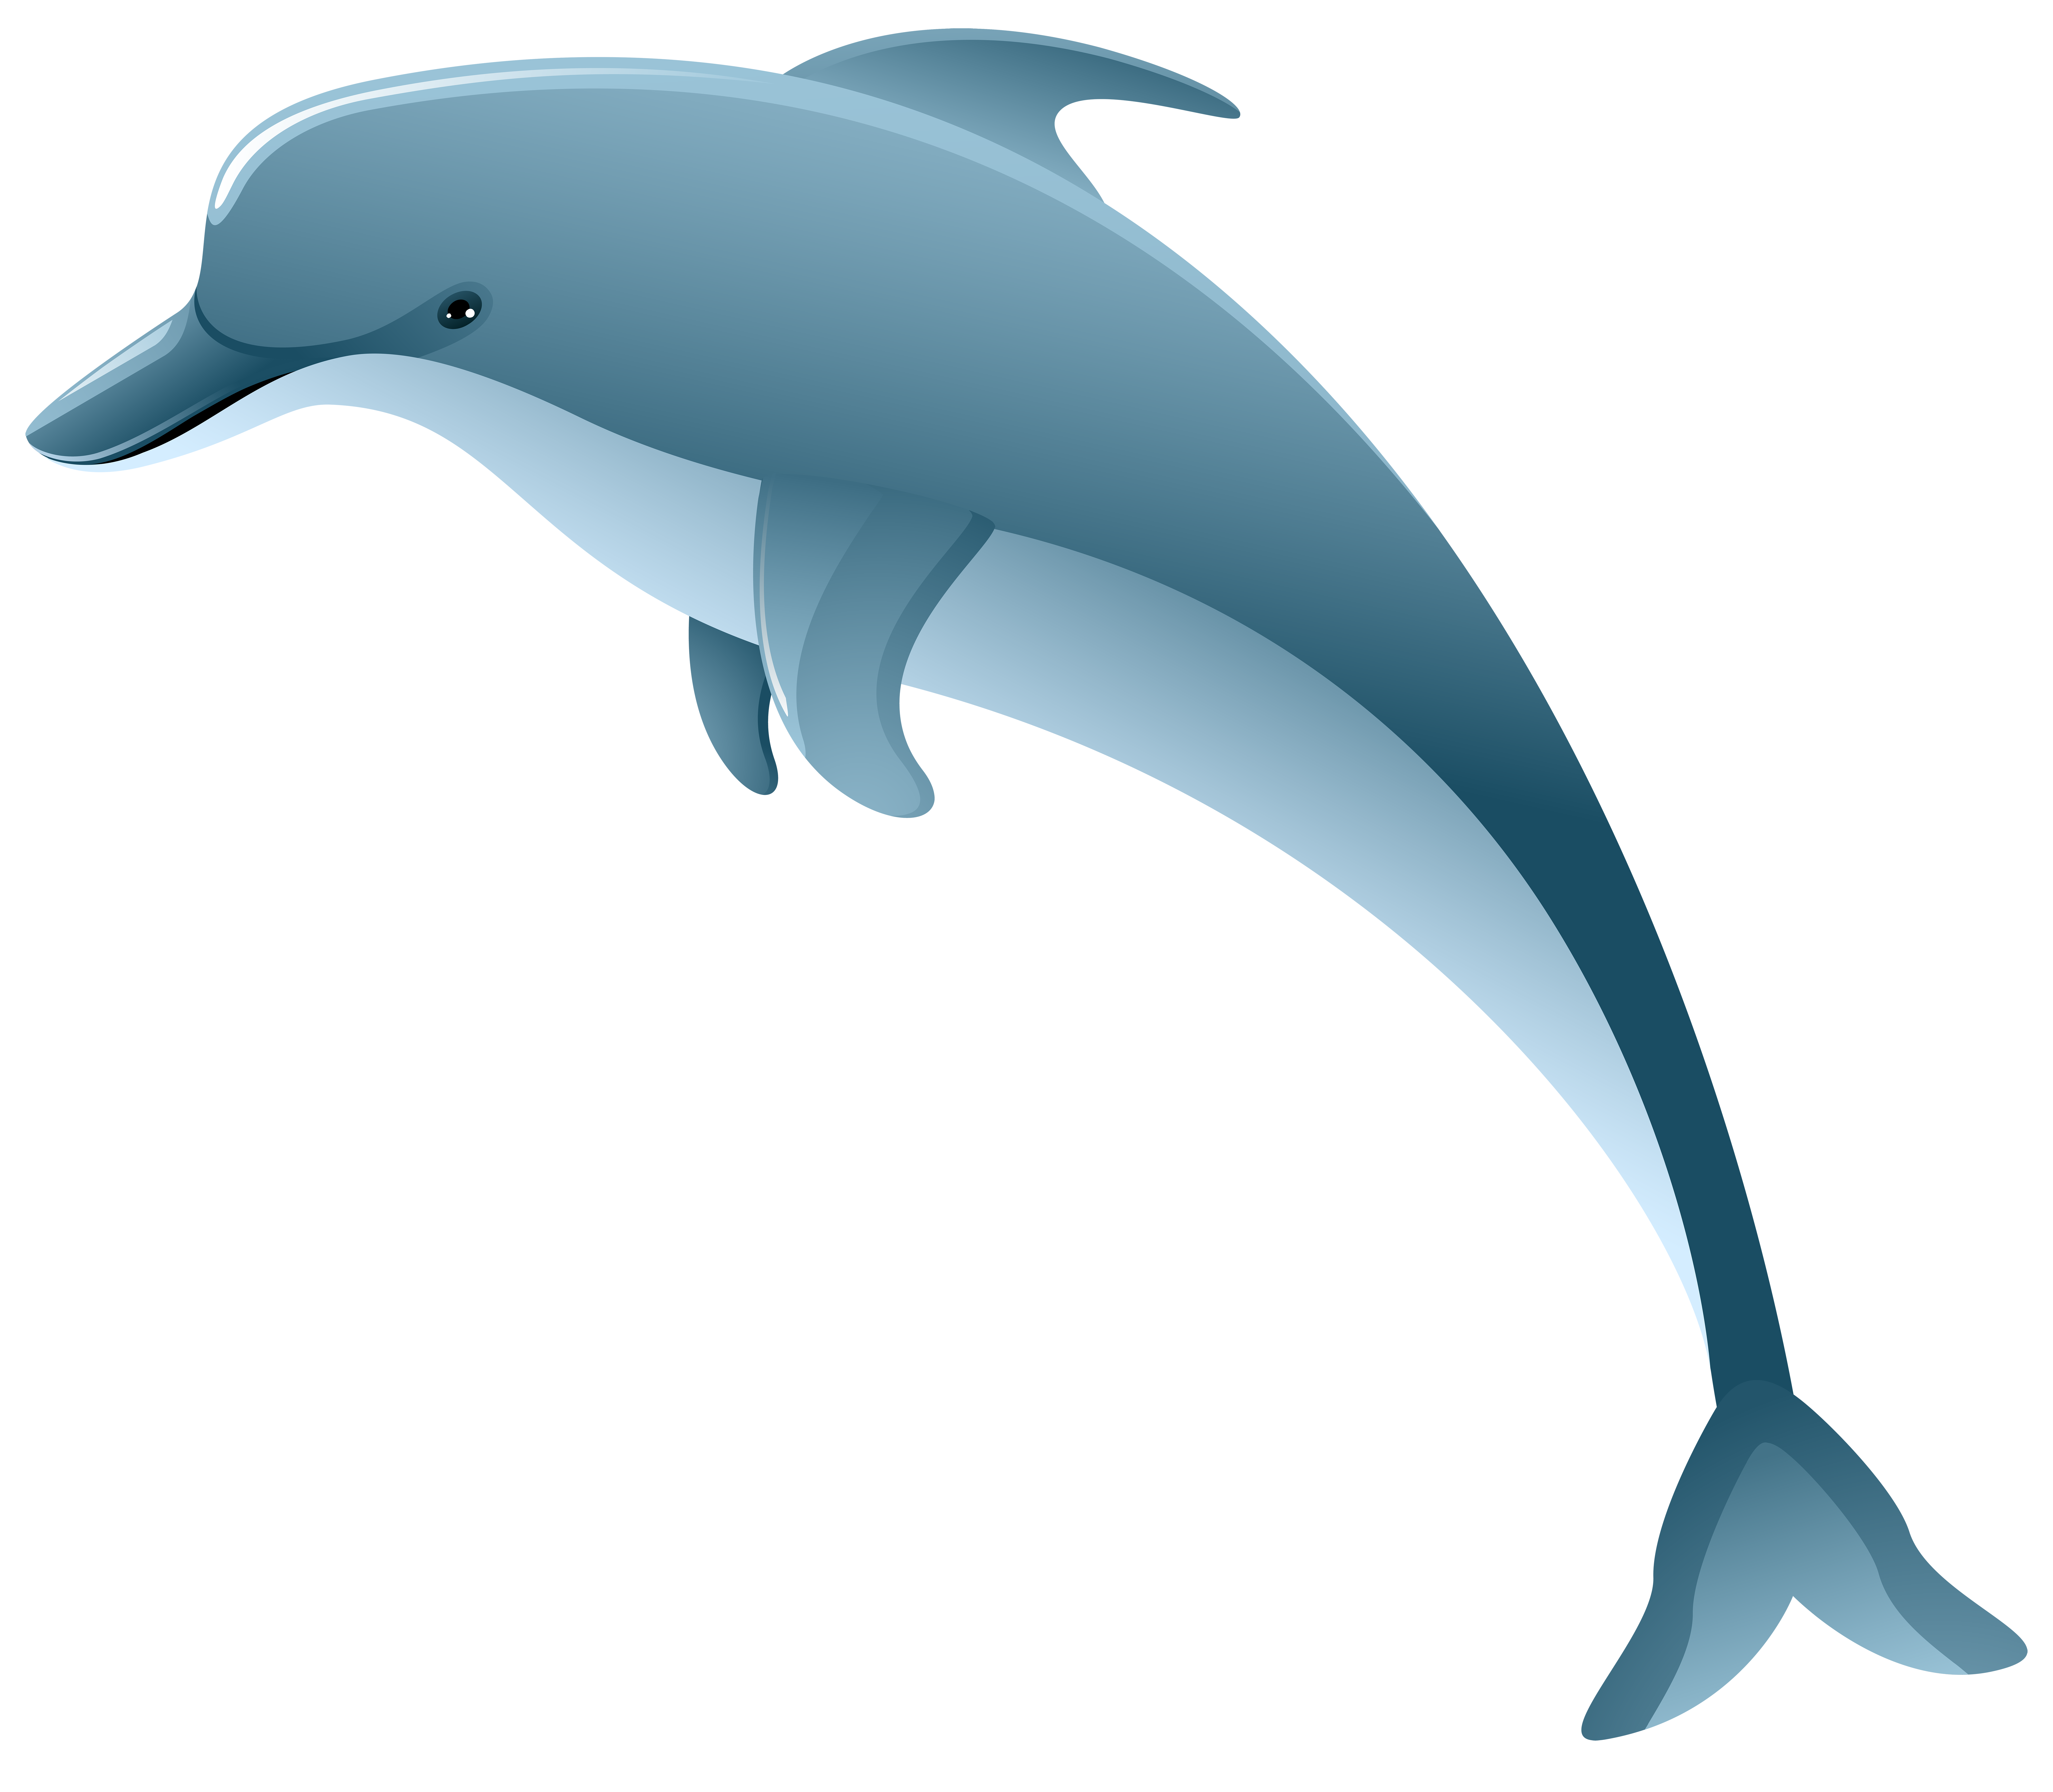 Png clip art image. Dolphin clipart dolphin mascot